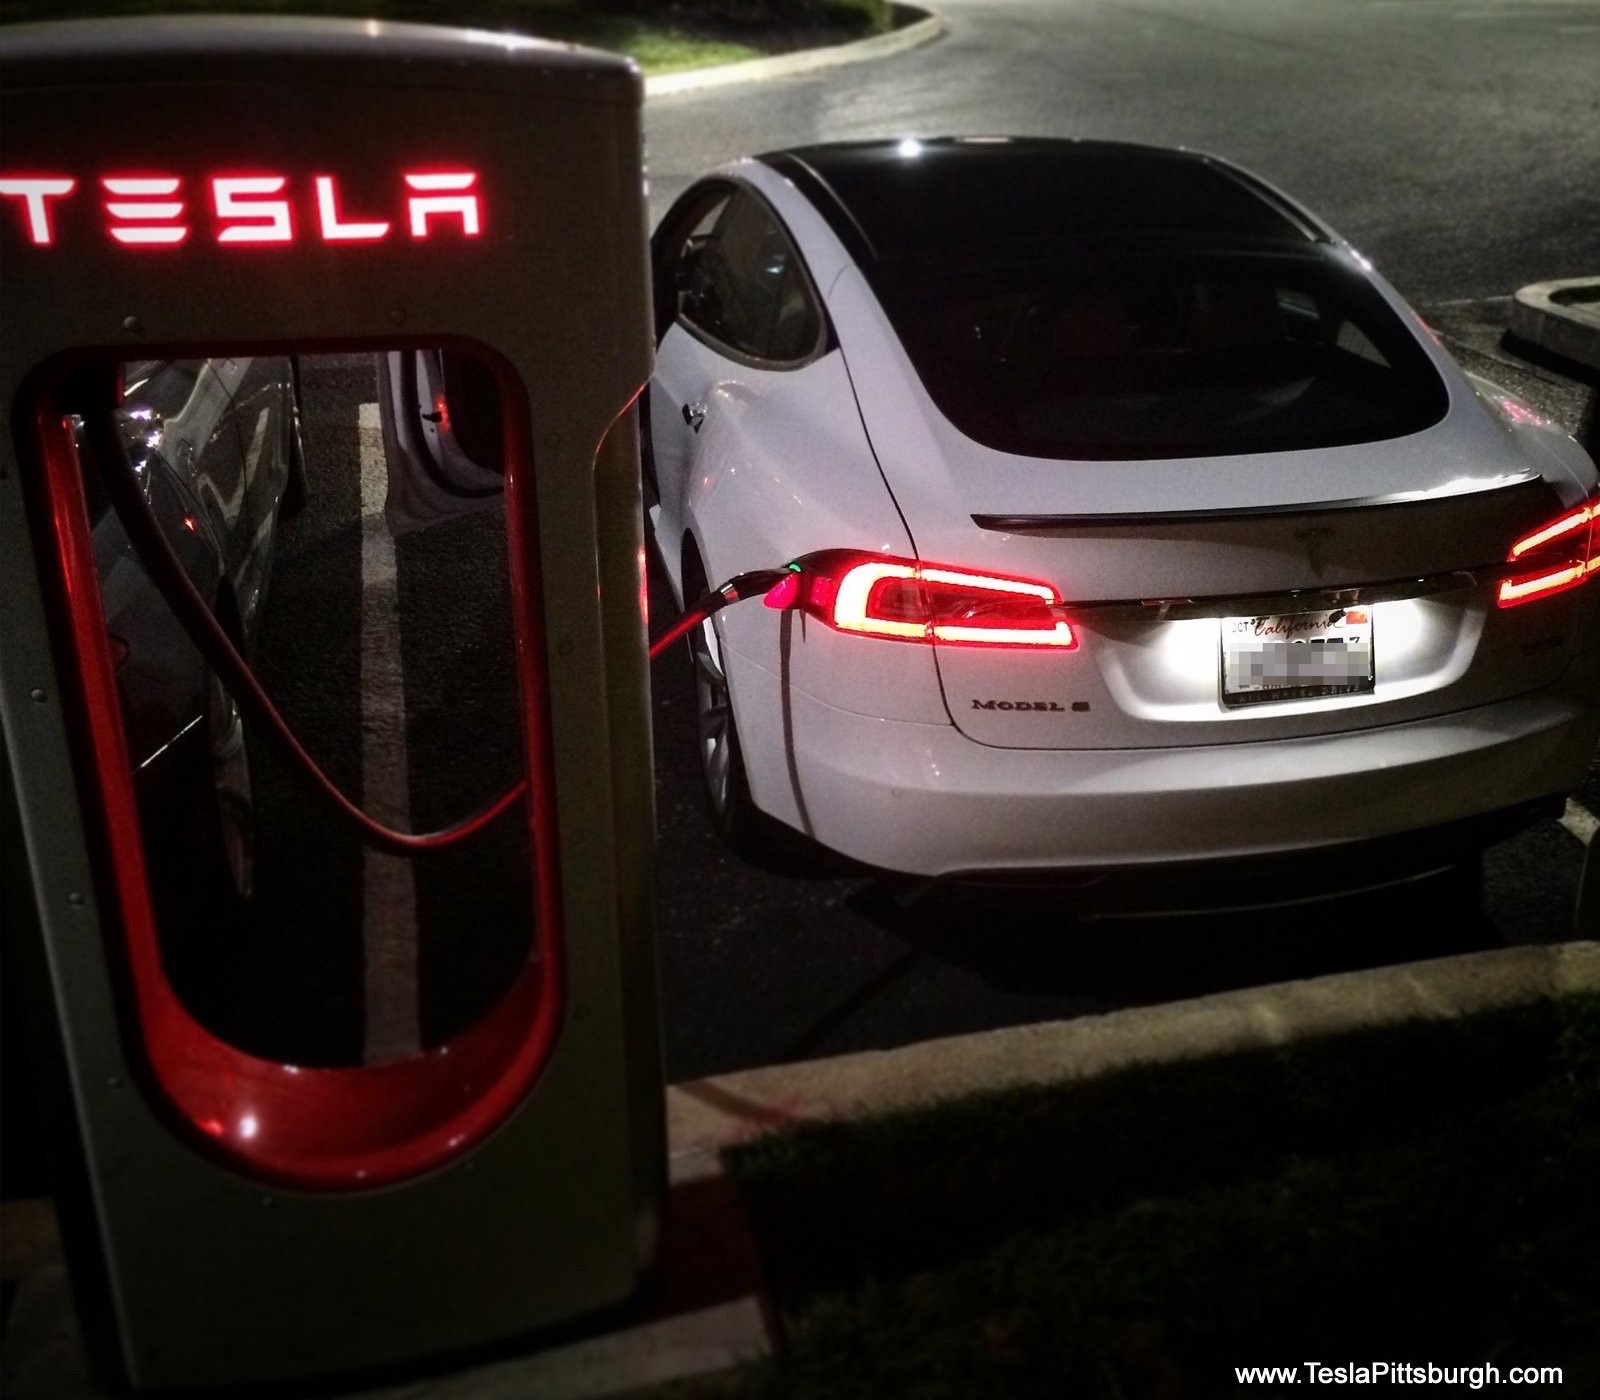 Tesla in talks with China's Lishen over Shanghai battery contract